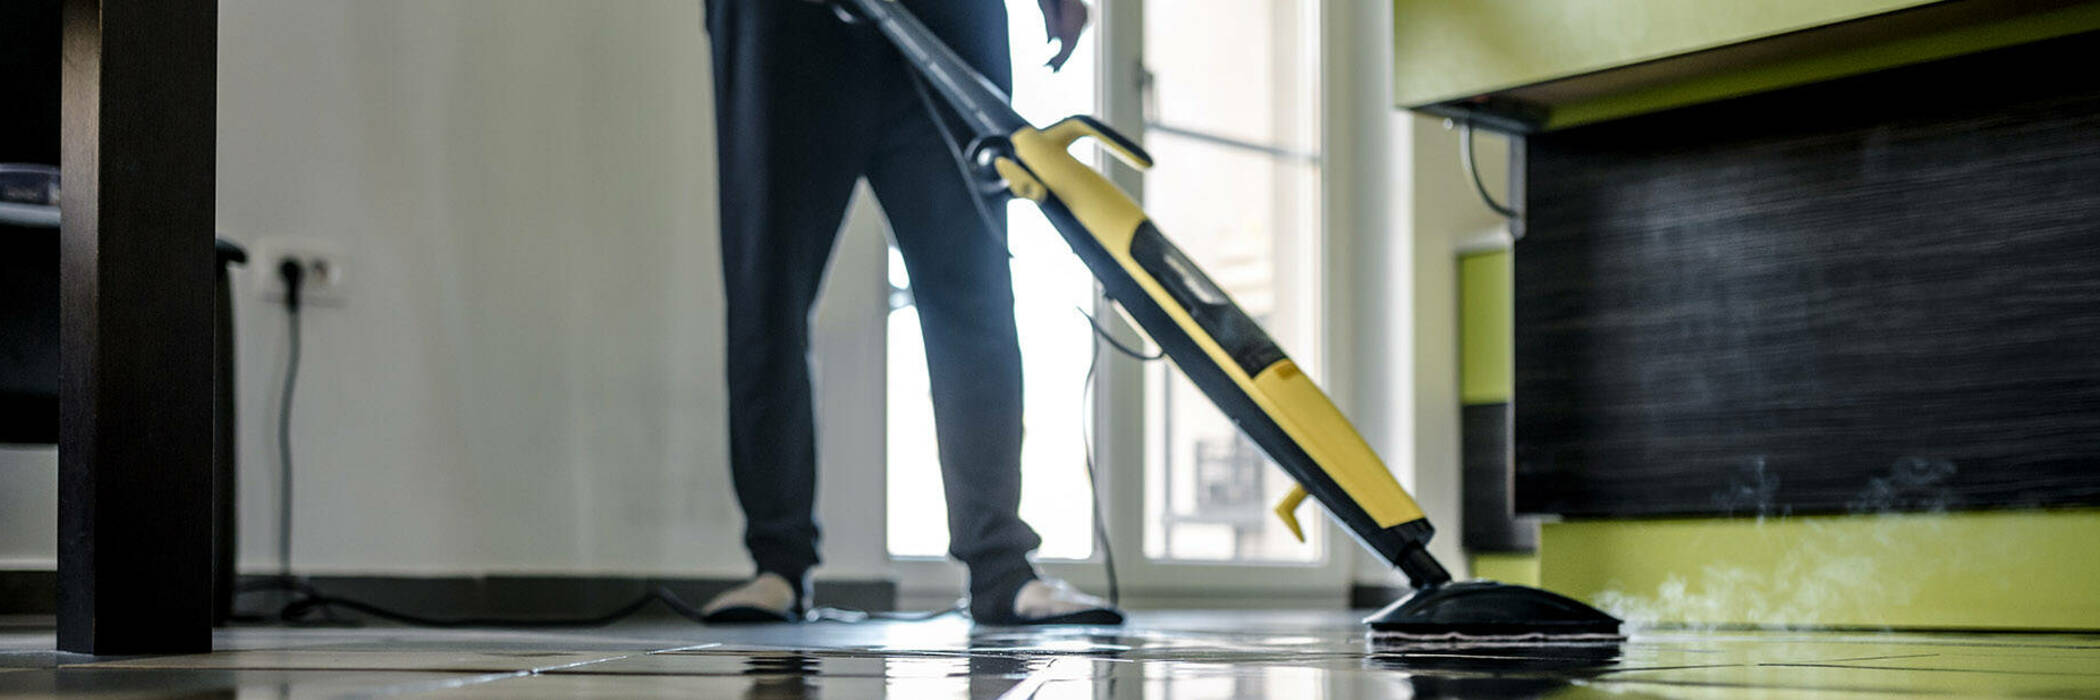 Man cleaning floor with steam mop.